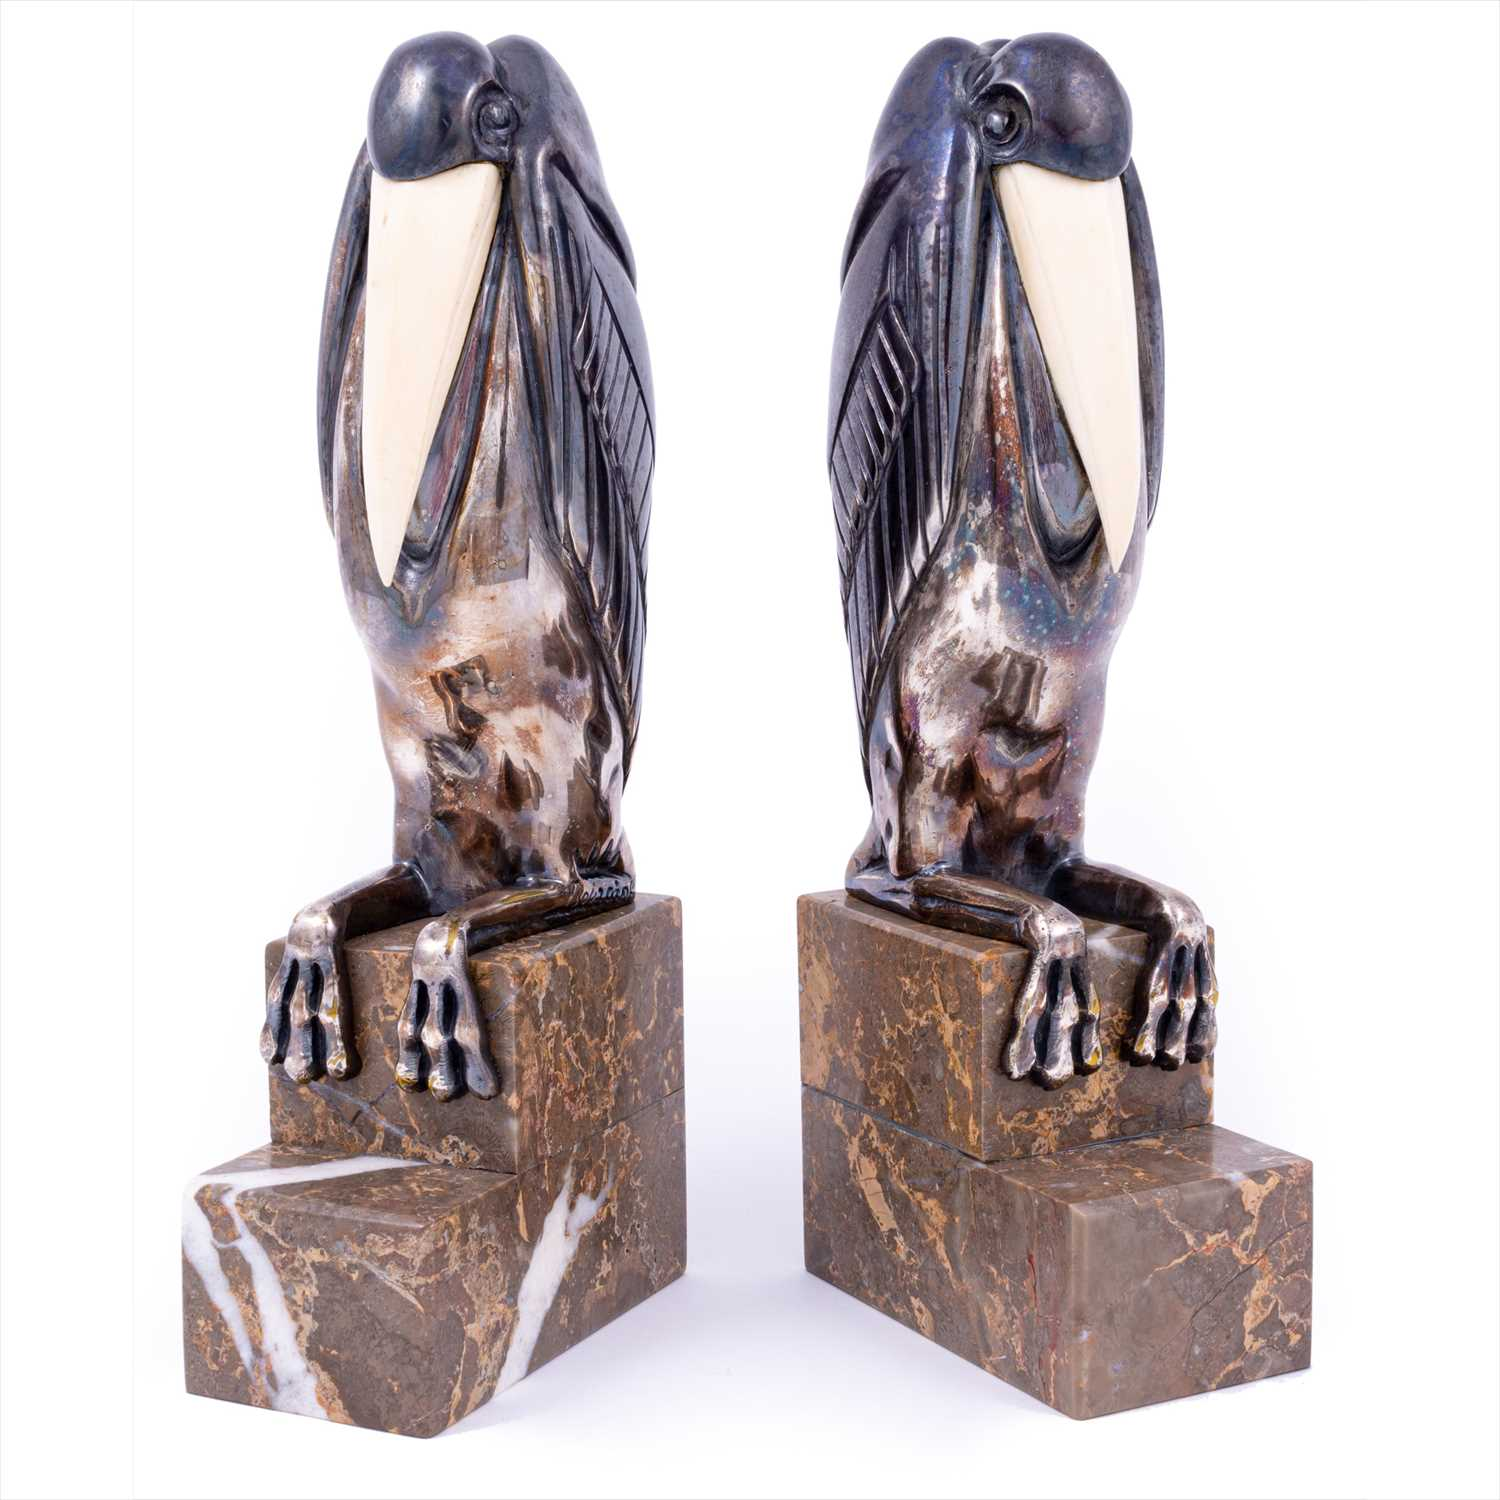 143 - A pair of Art Deco silvered bronze and ivory bookends by Marcel-Andre Bouraine